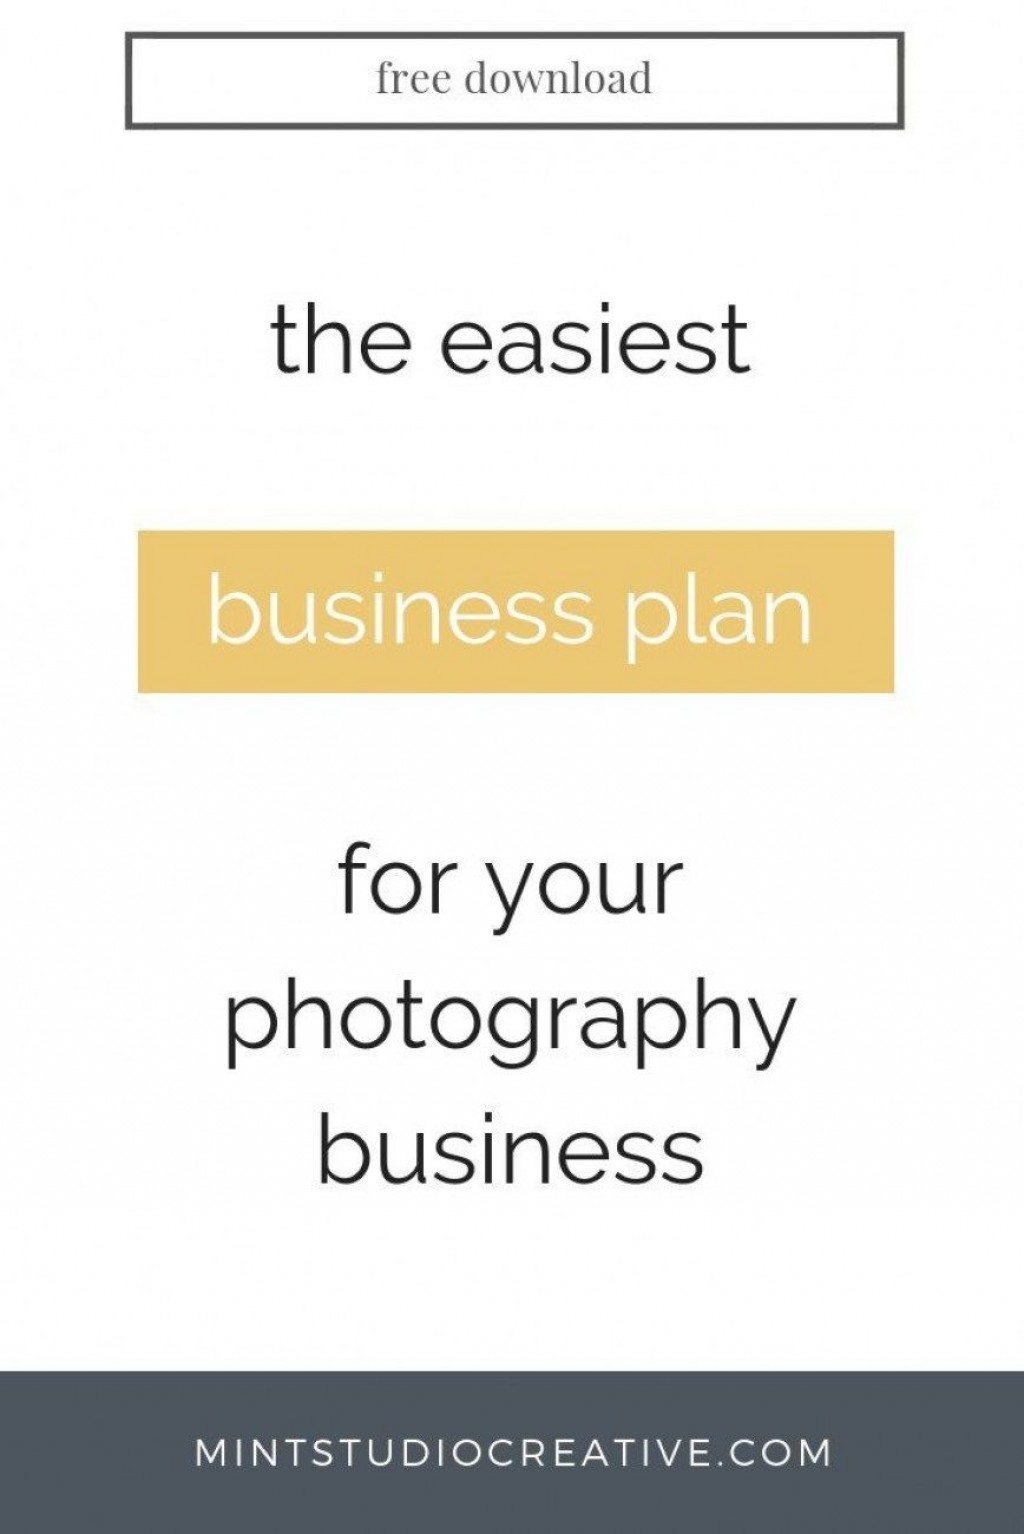 007 Stupendou Wedding Photography Busines Plan Example High Resolution  Of SampleLarge